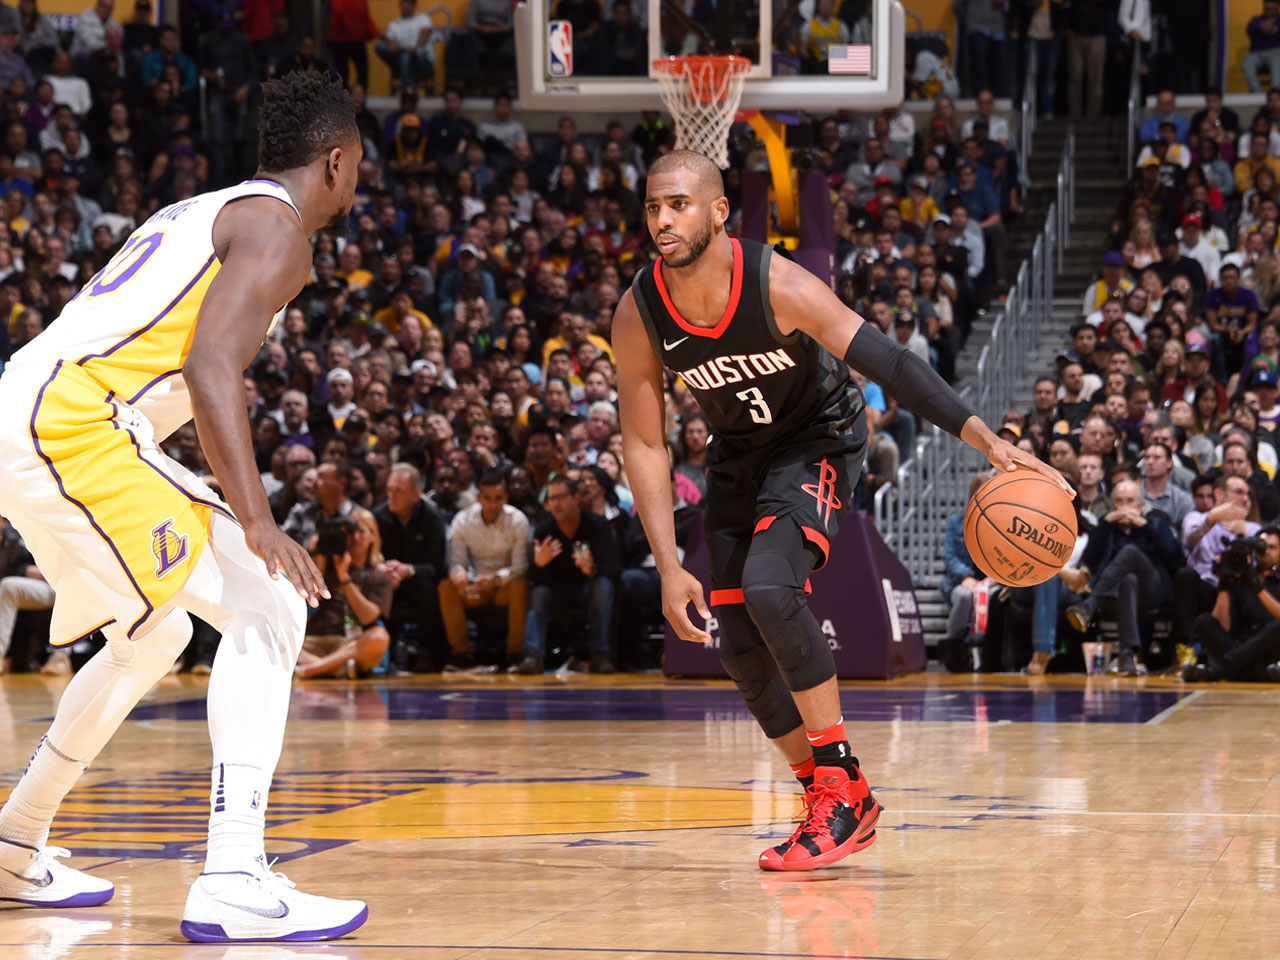 NBA Star Chris Paul's Key Training Method for Staying Strong, and How the Rockets Can Challenge the Warriors